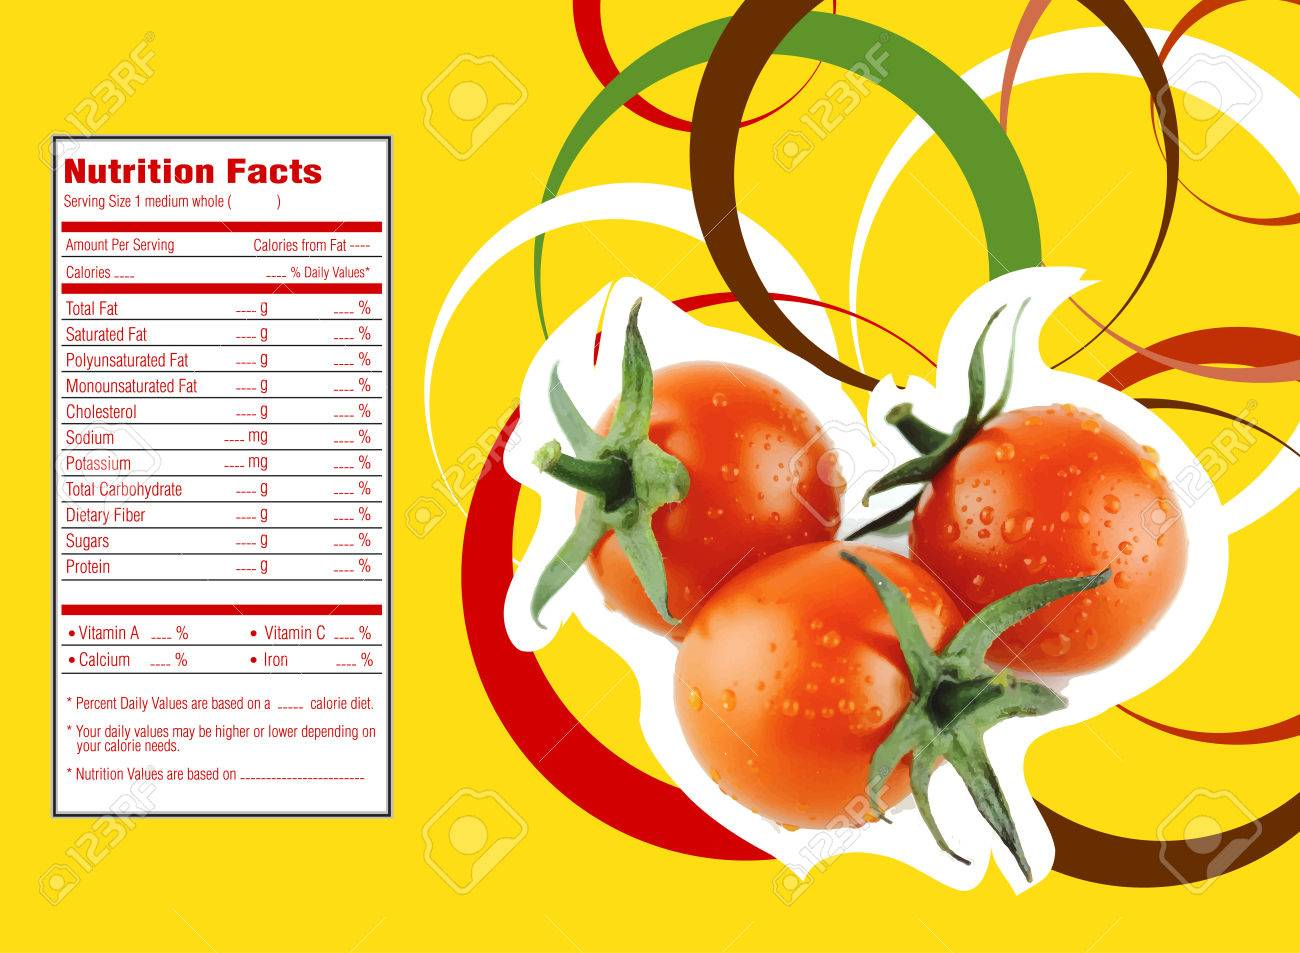 Cherry Tomatoes Nutrition Facts Stock Photo Picture And Royalty Free Image Image 30789143